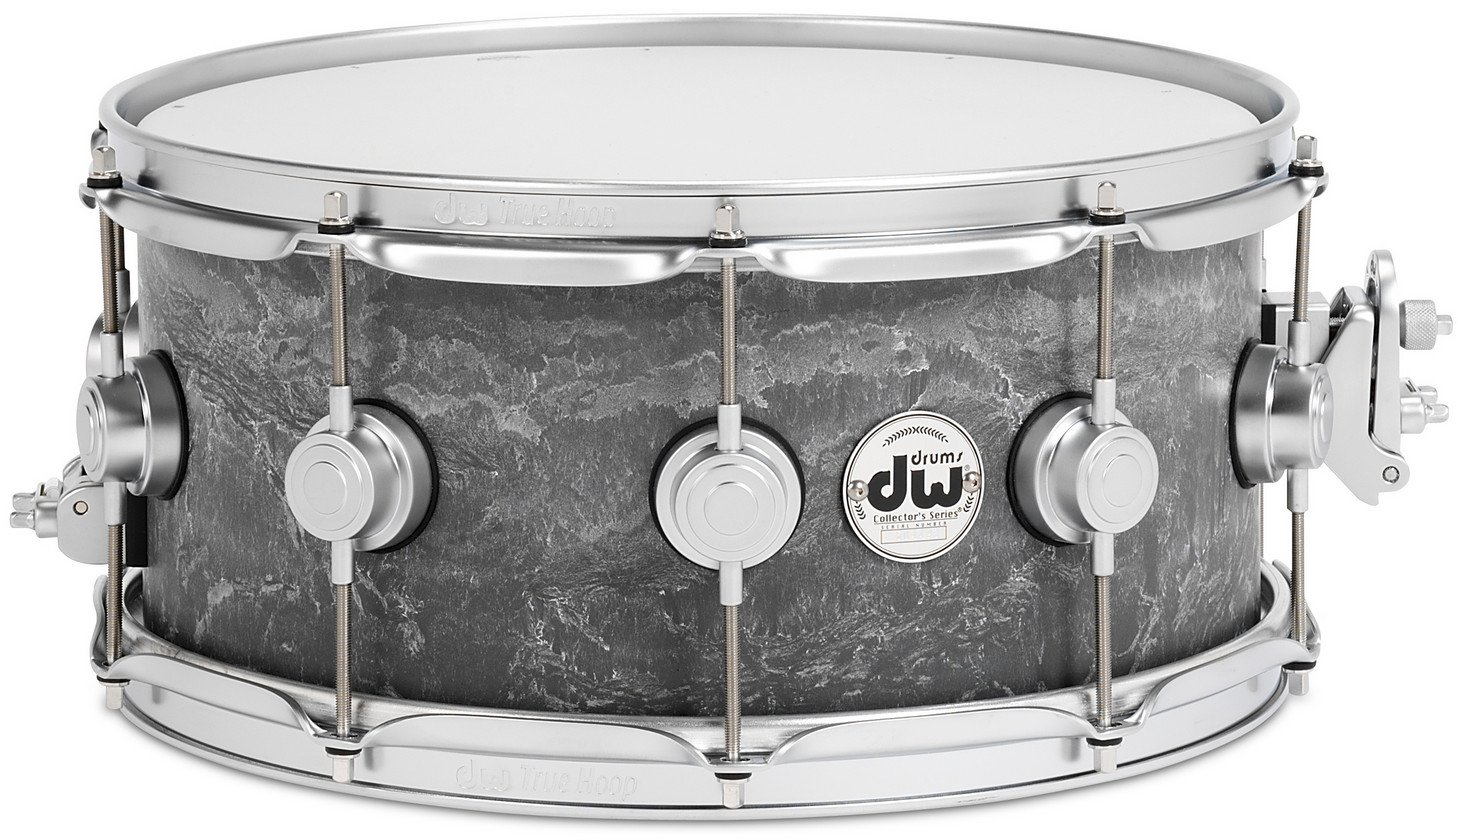 """Collector's Series 6.5""""x14"""" Concrete Snare Drum with Satin Chrome Hardware"""